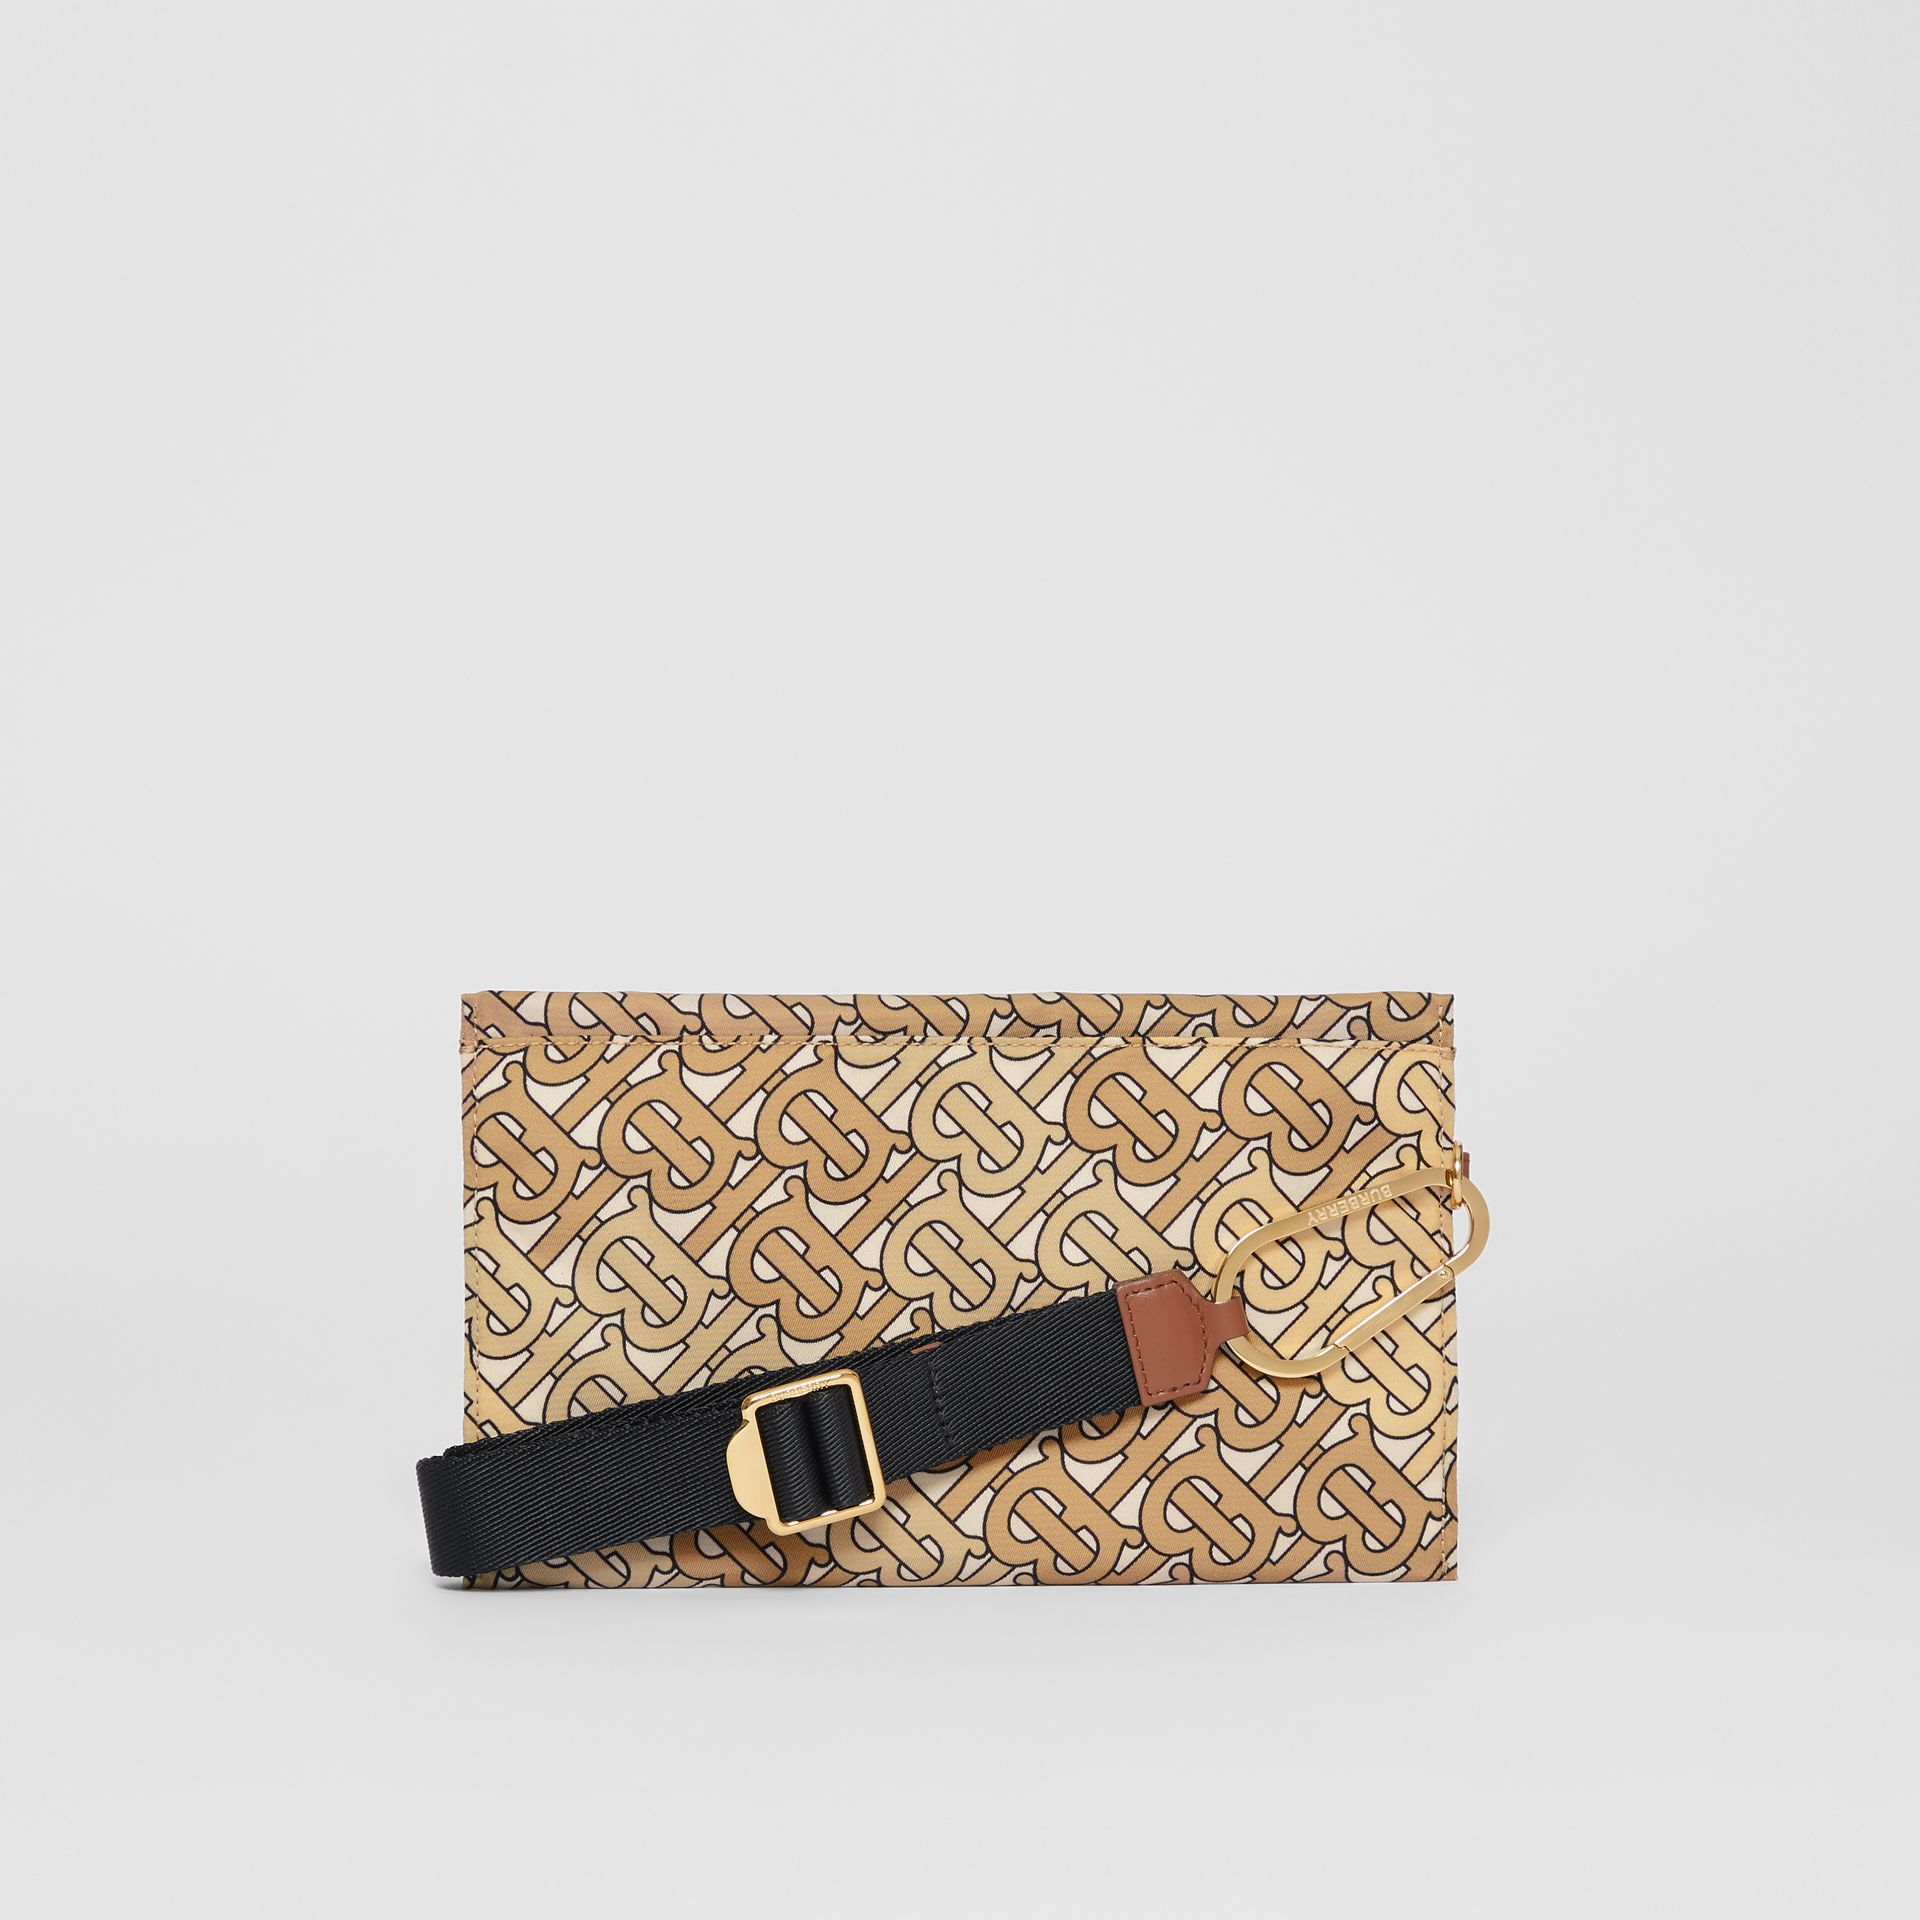 Monogram Print Nylon Zip Pouch in Beige - Women | Burberry - gallery image 7